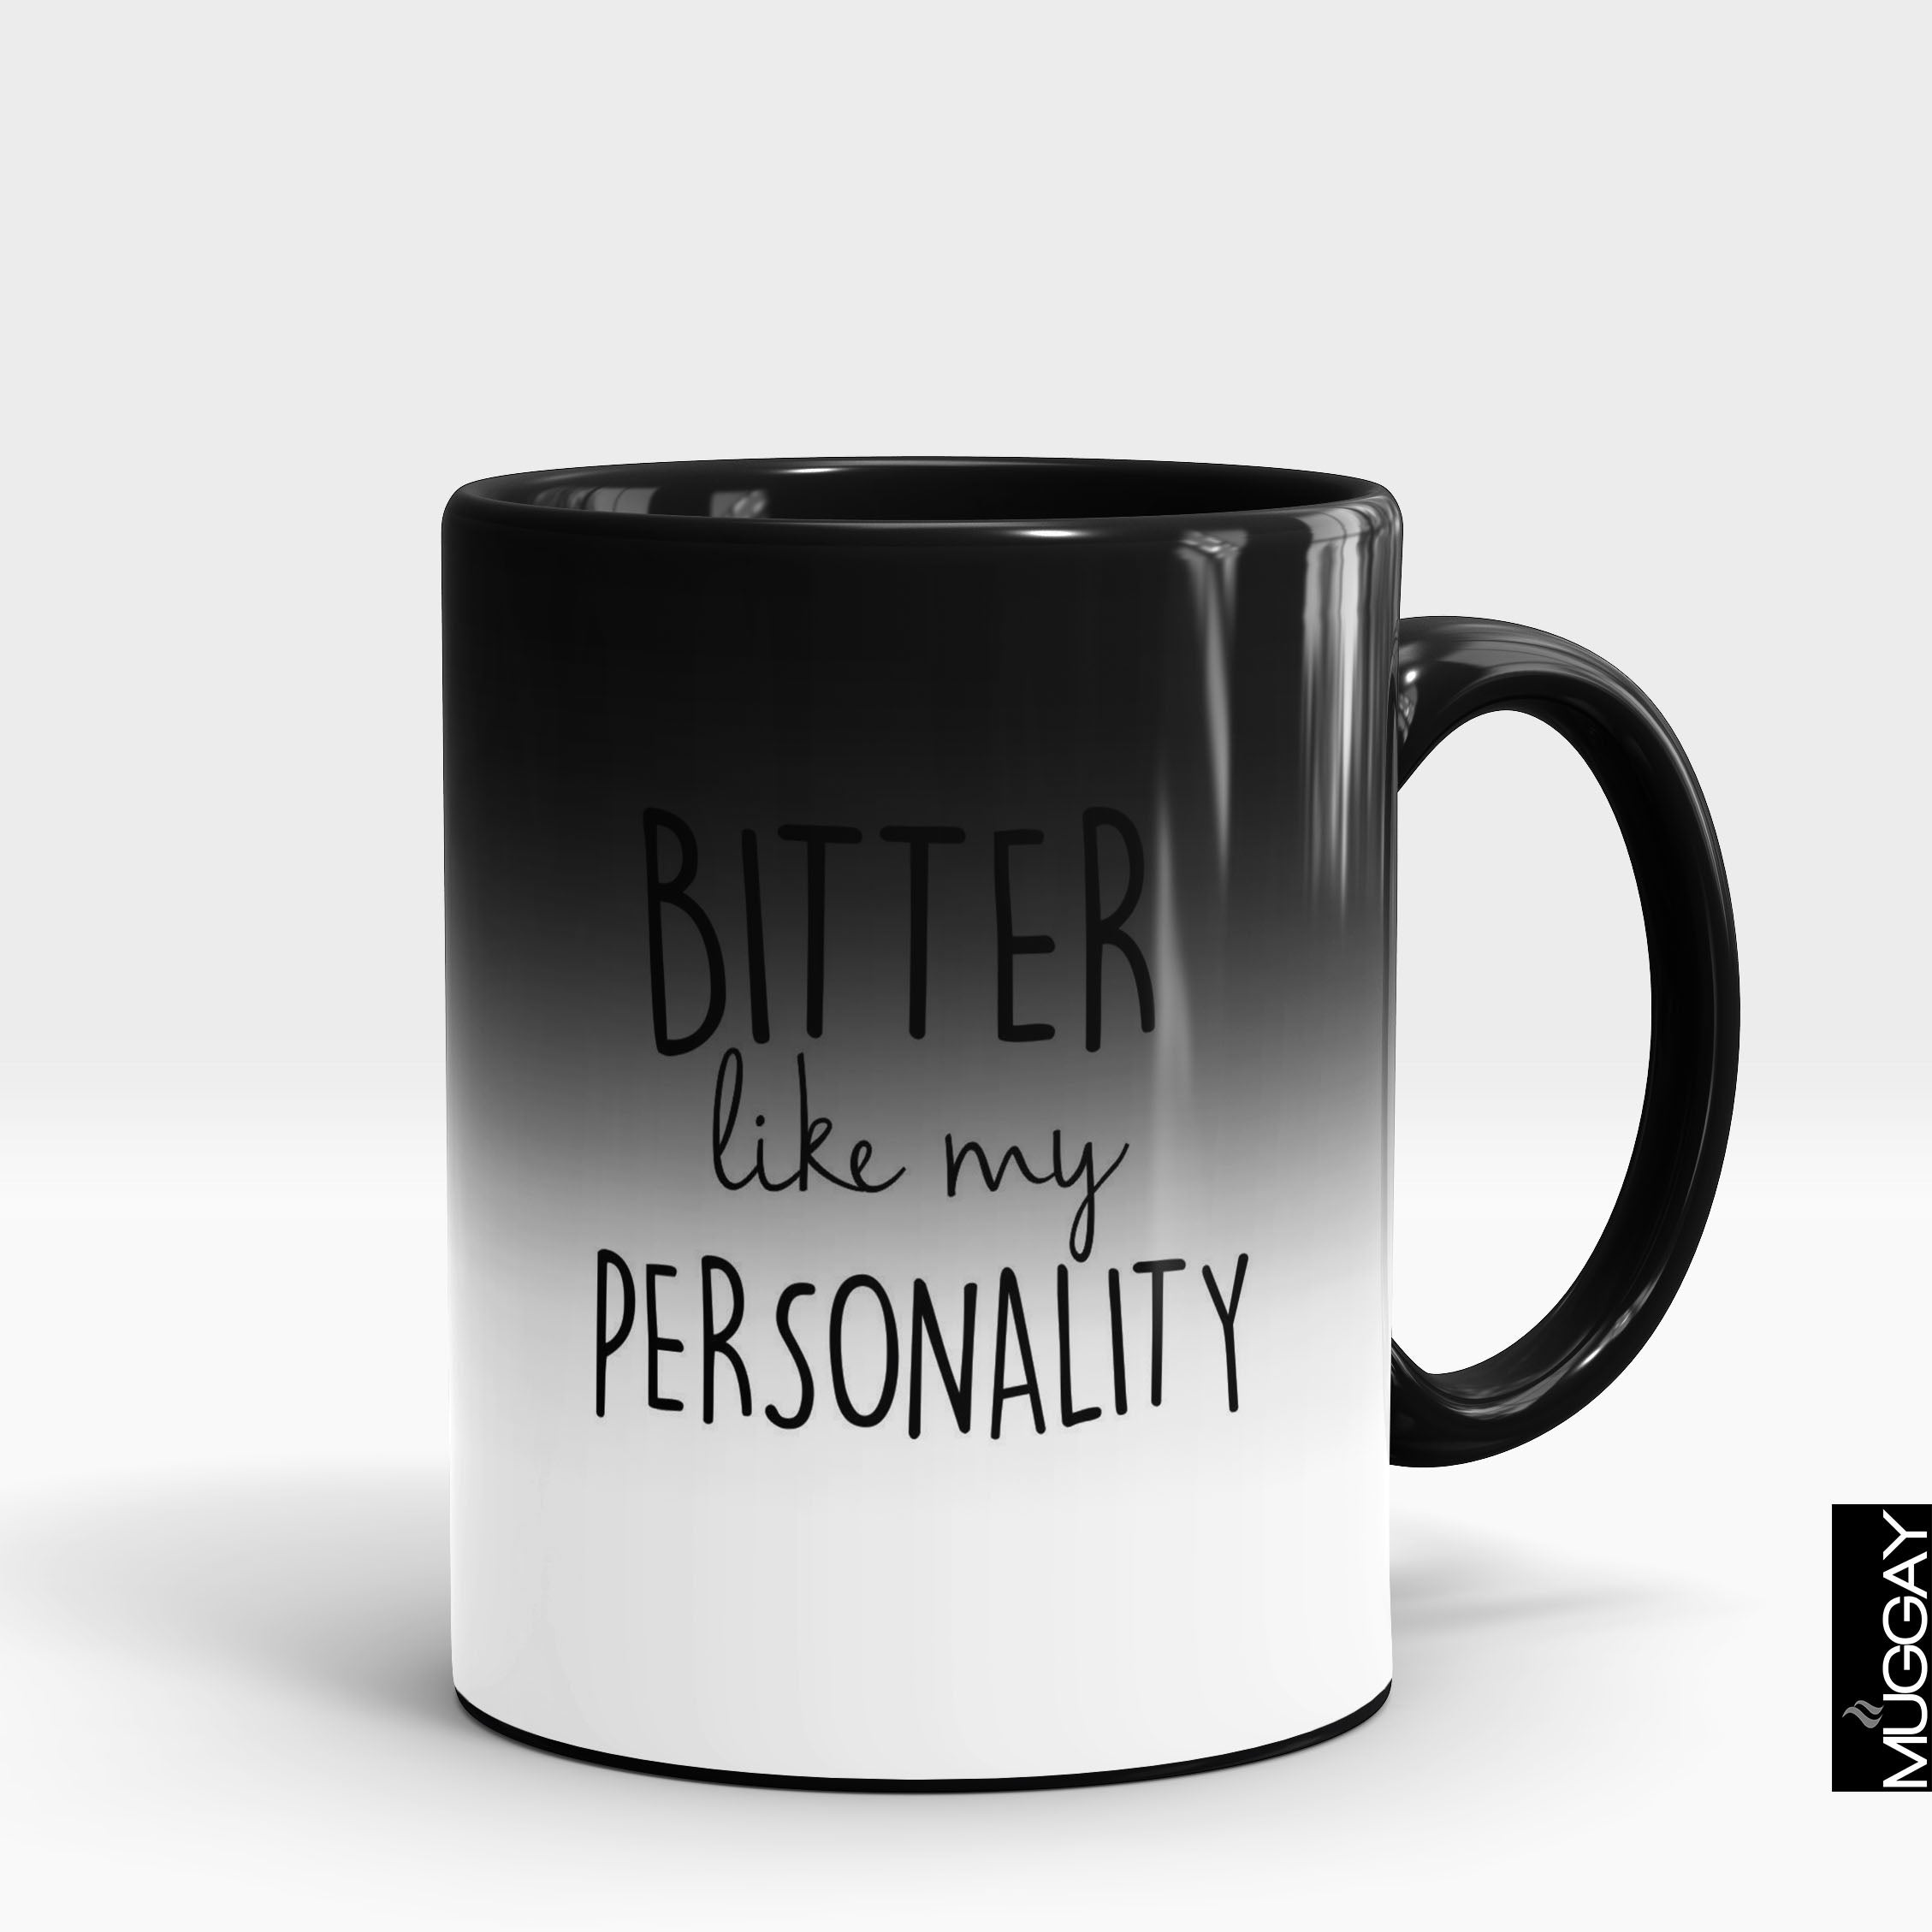 Bitter - Muggay.com - Mugs - Printing shop - truck Art mugs - Mug printing - Customized printing - Digital printing - Muggay